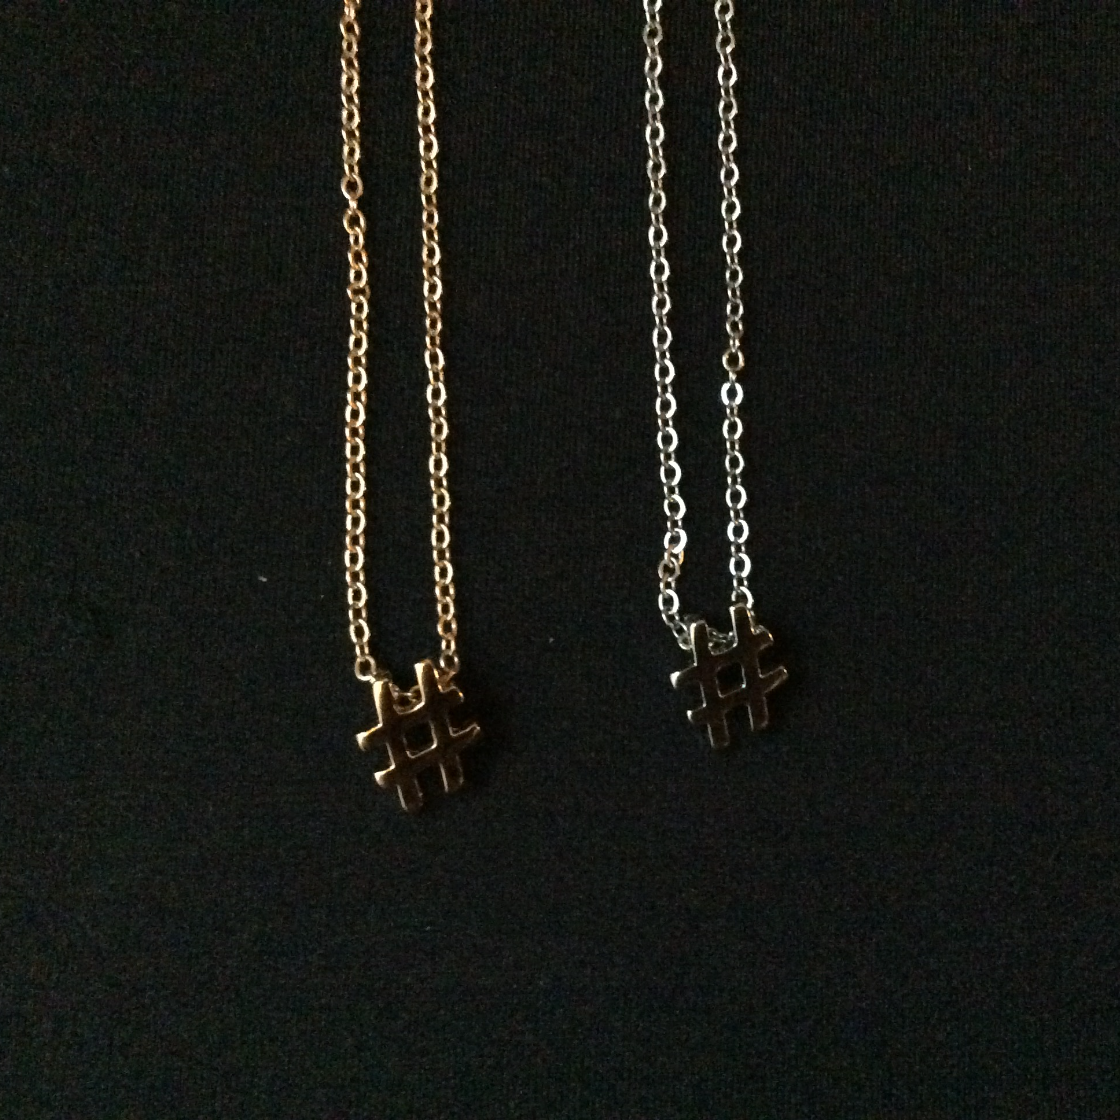 Gold and Silver Hashtag Necklaces